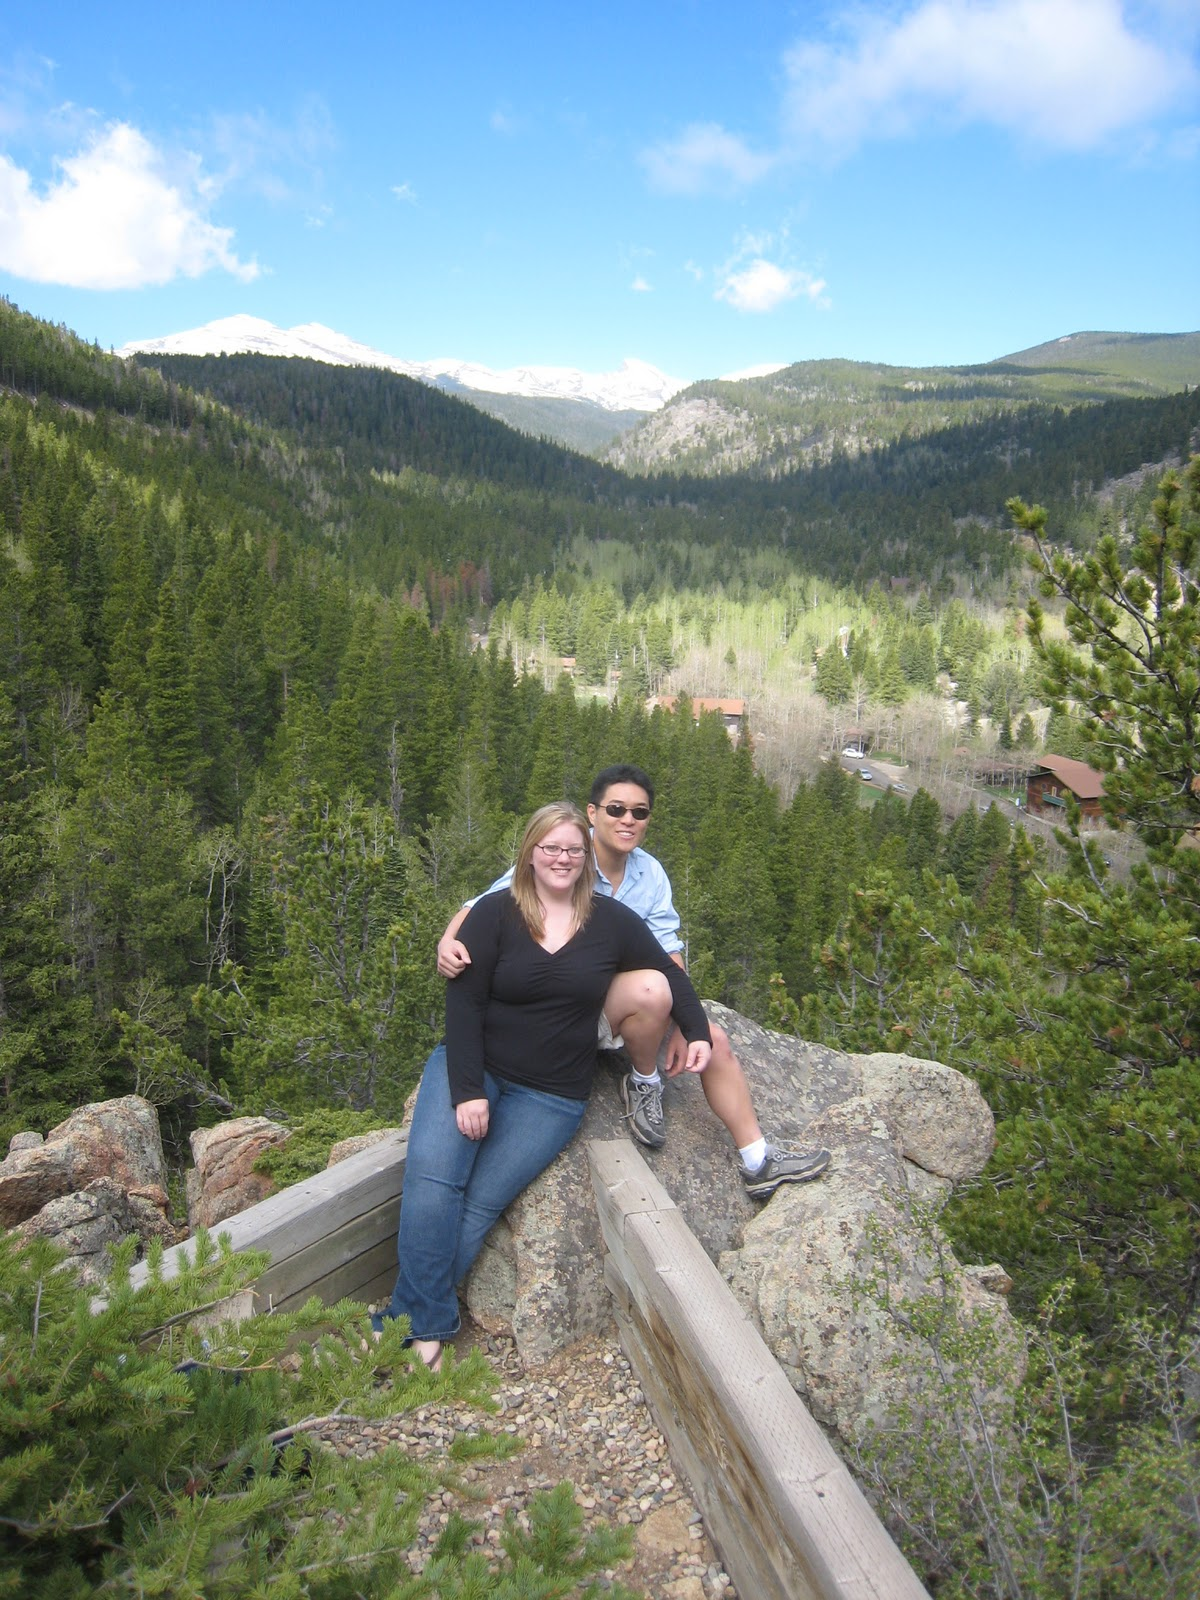 May: Went to an amazing young adult retreat in Colorado mountains. LOVED IT.